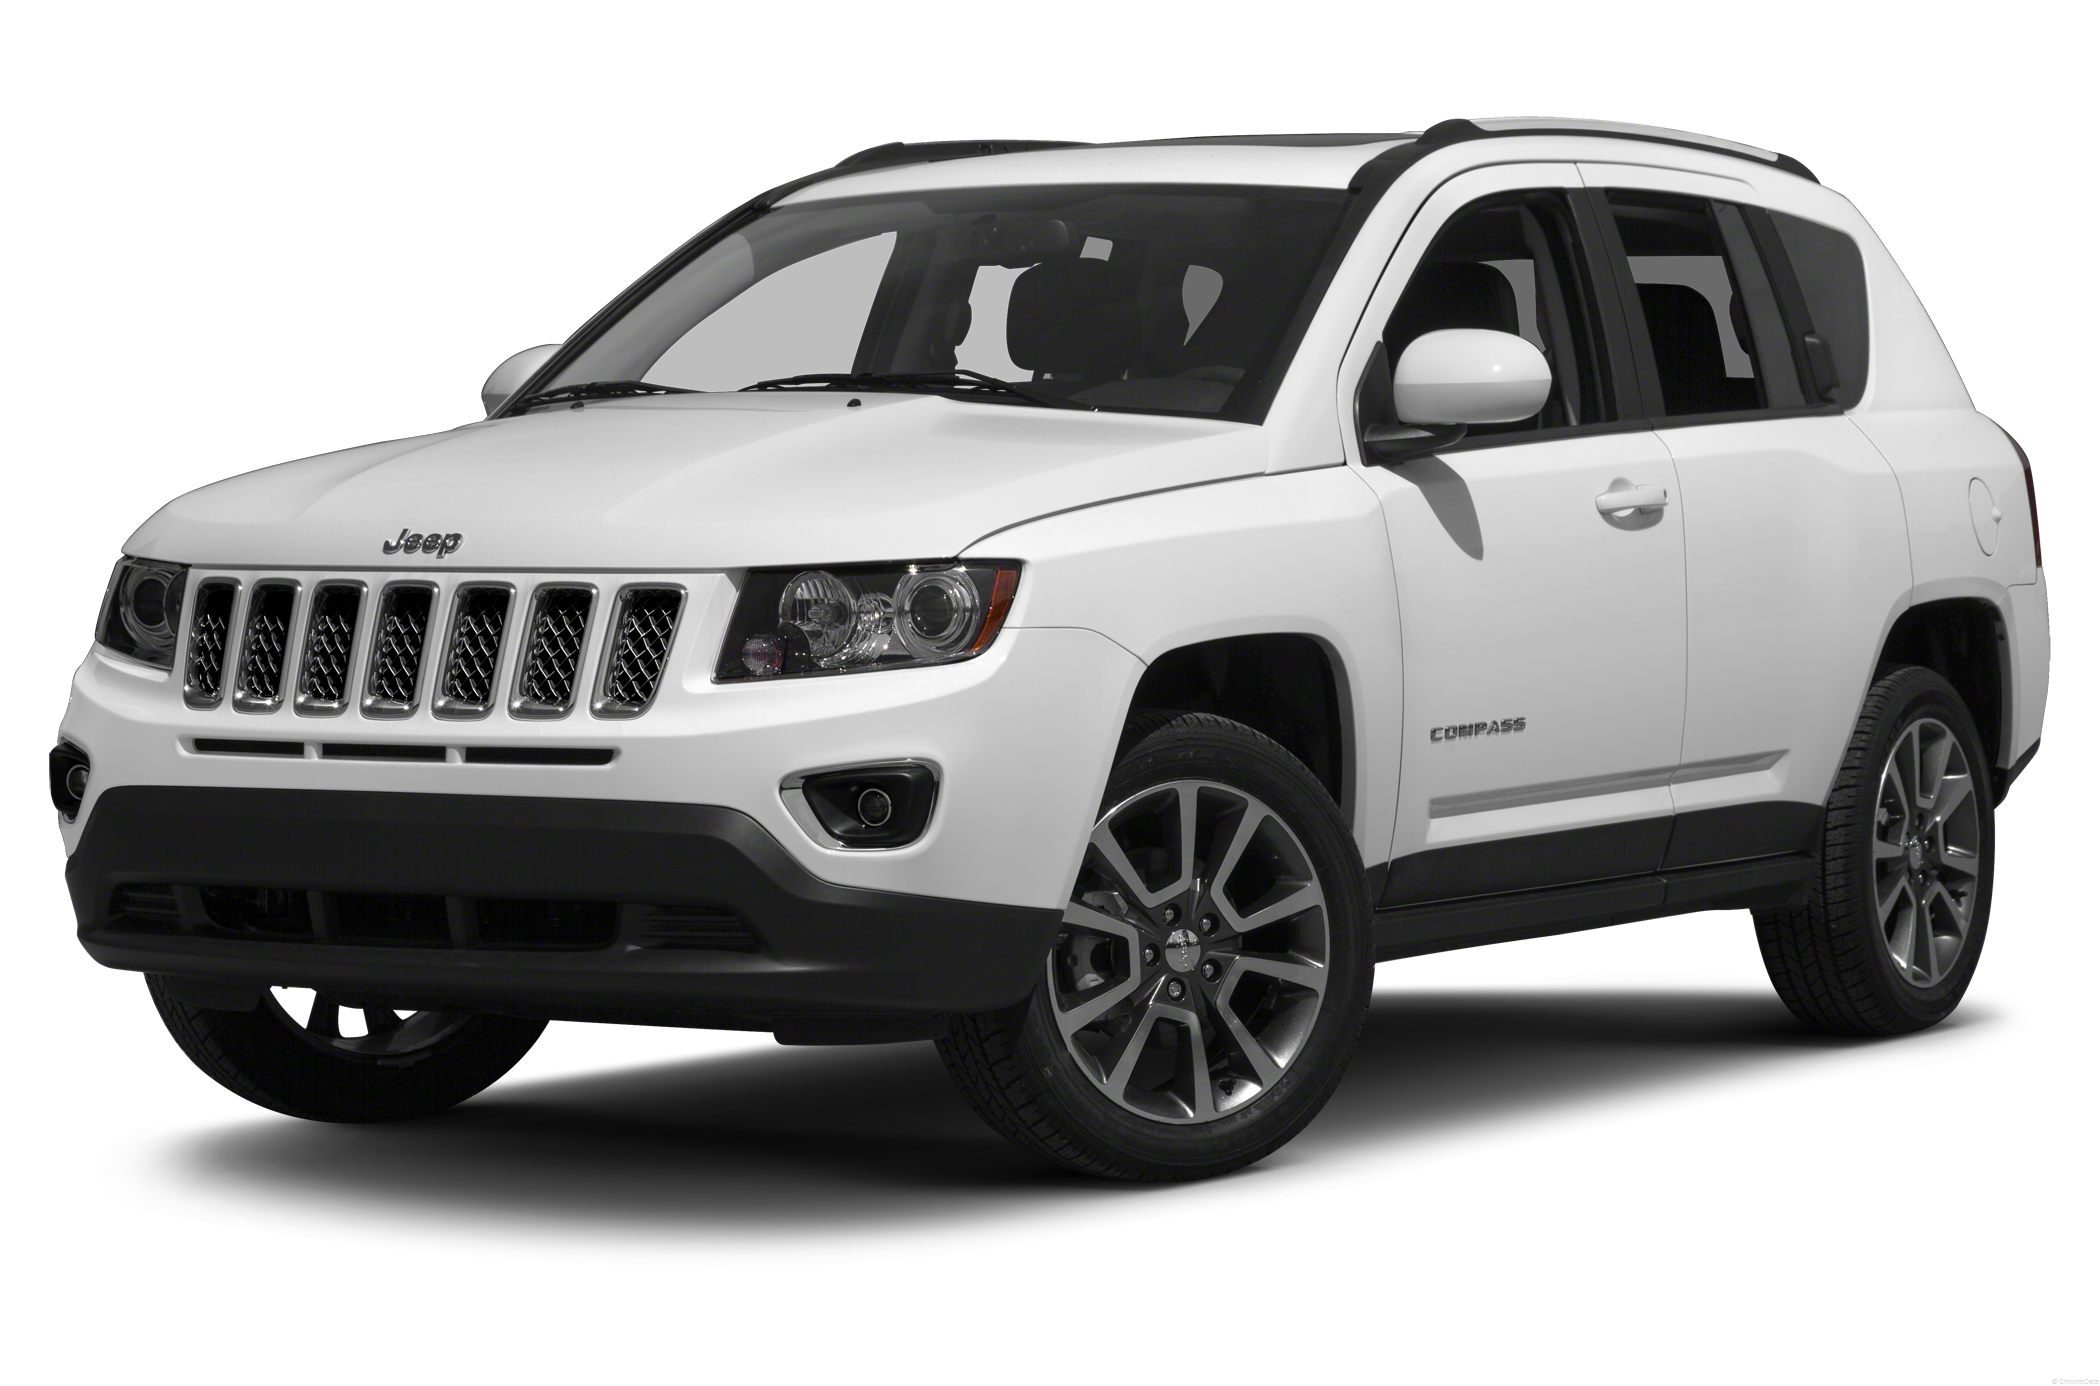 jeep compass images #10